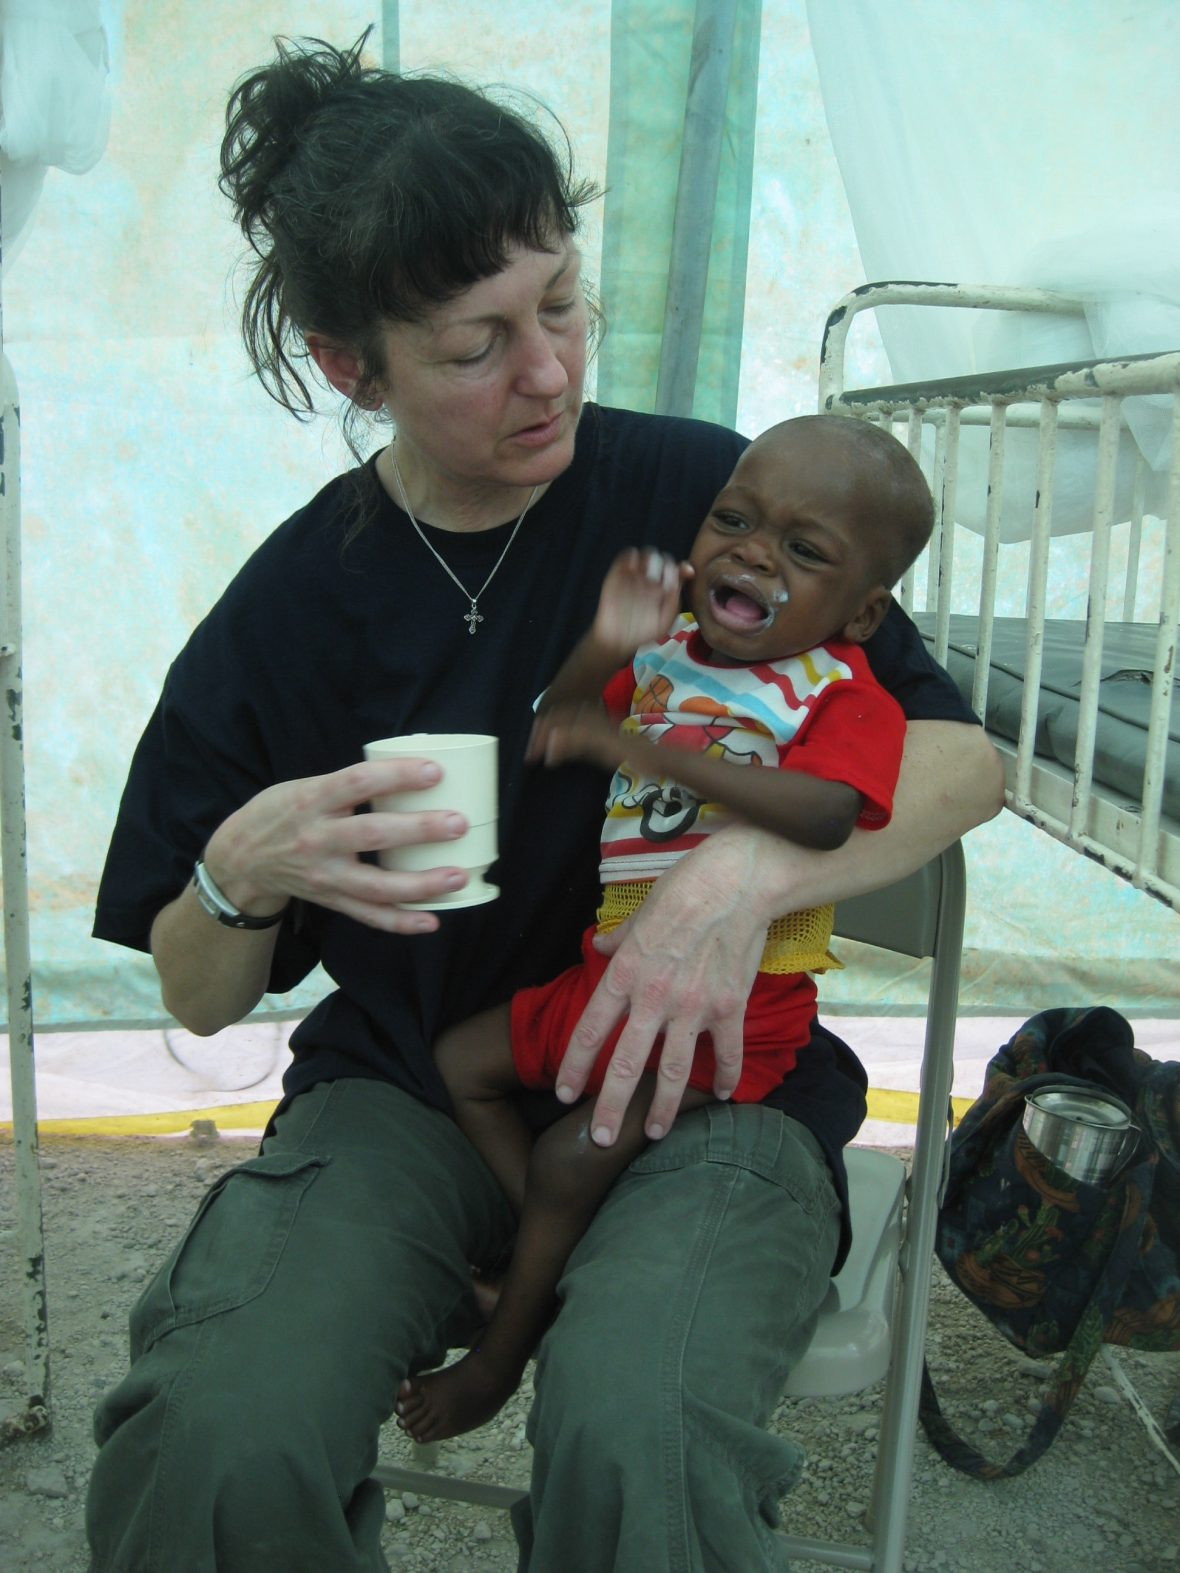 Haiti earthquake relief and child nutrition, 2010